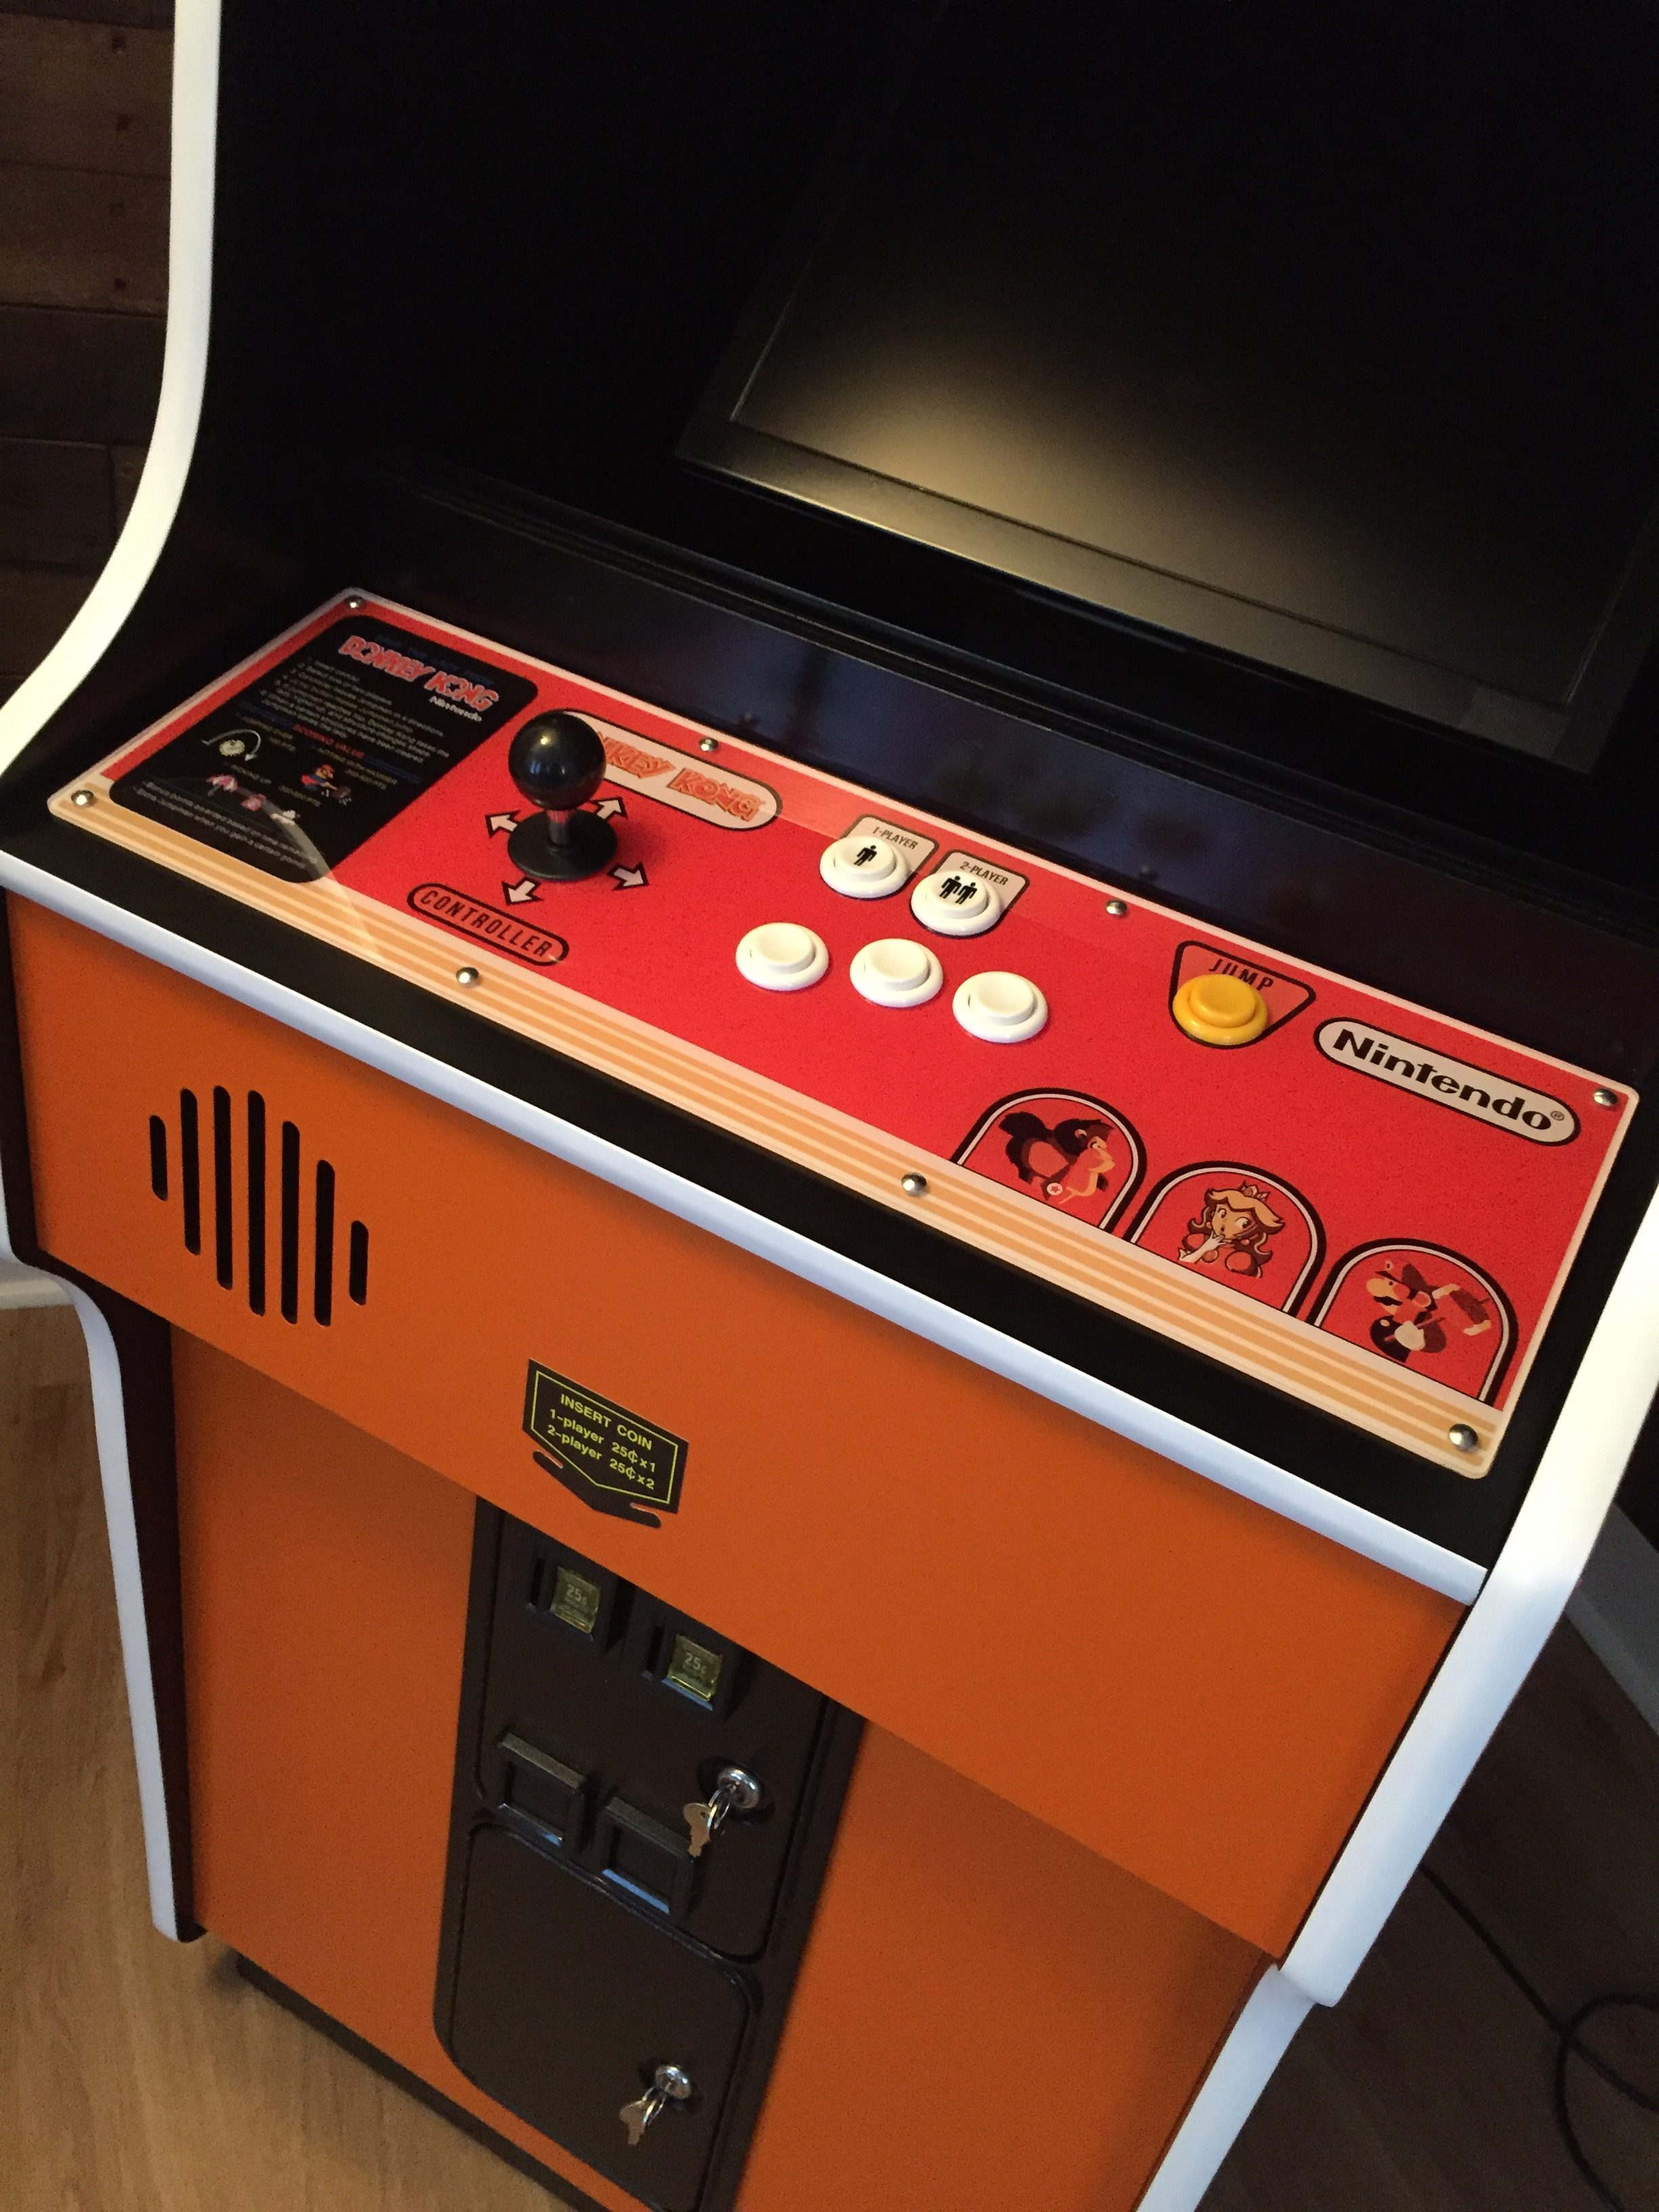 Donkey Kong Arcade Machine: CP Installed in Cabinet